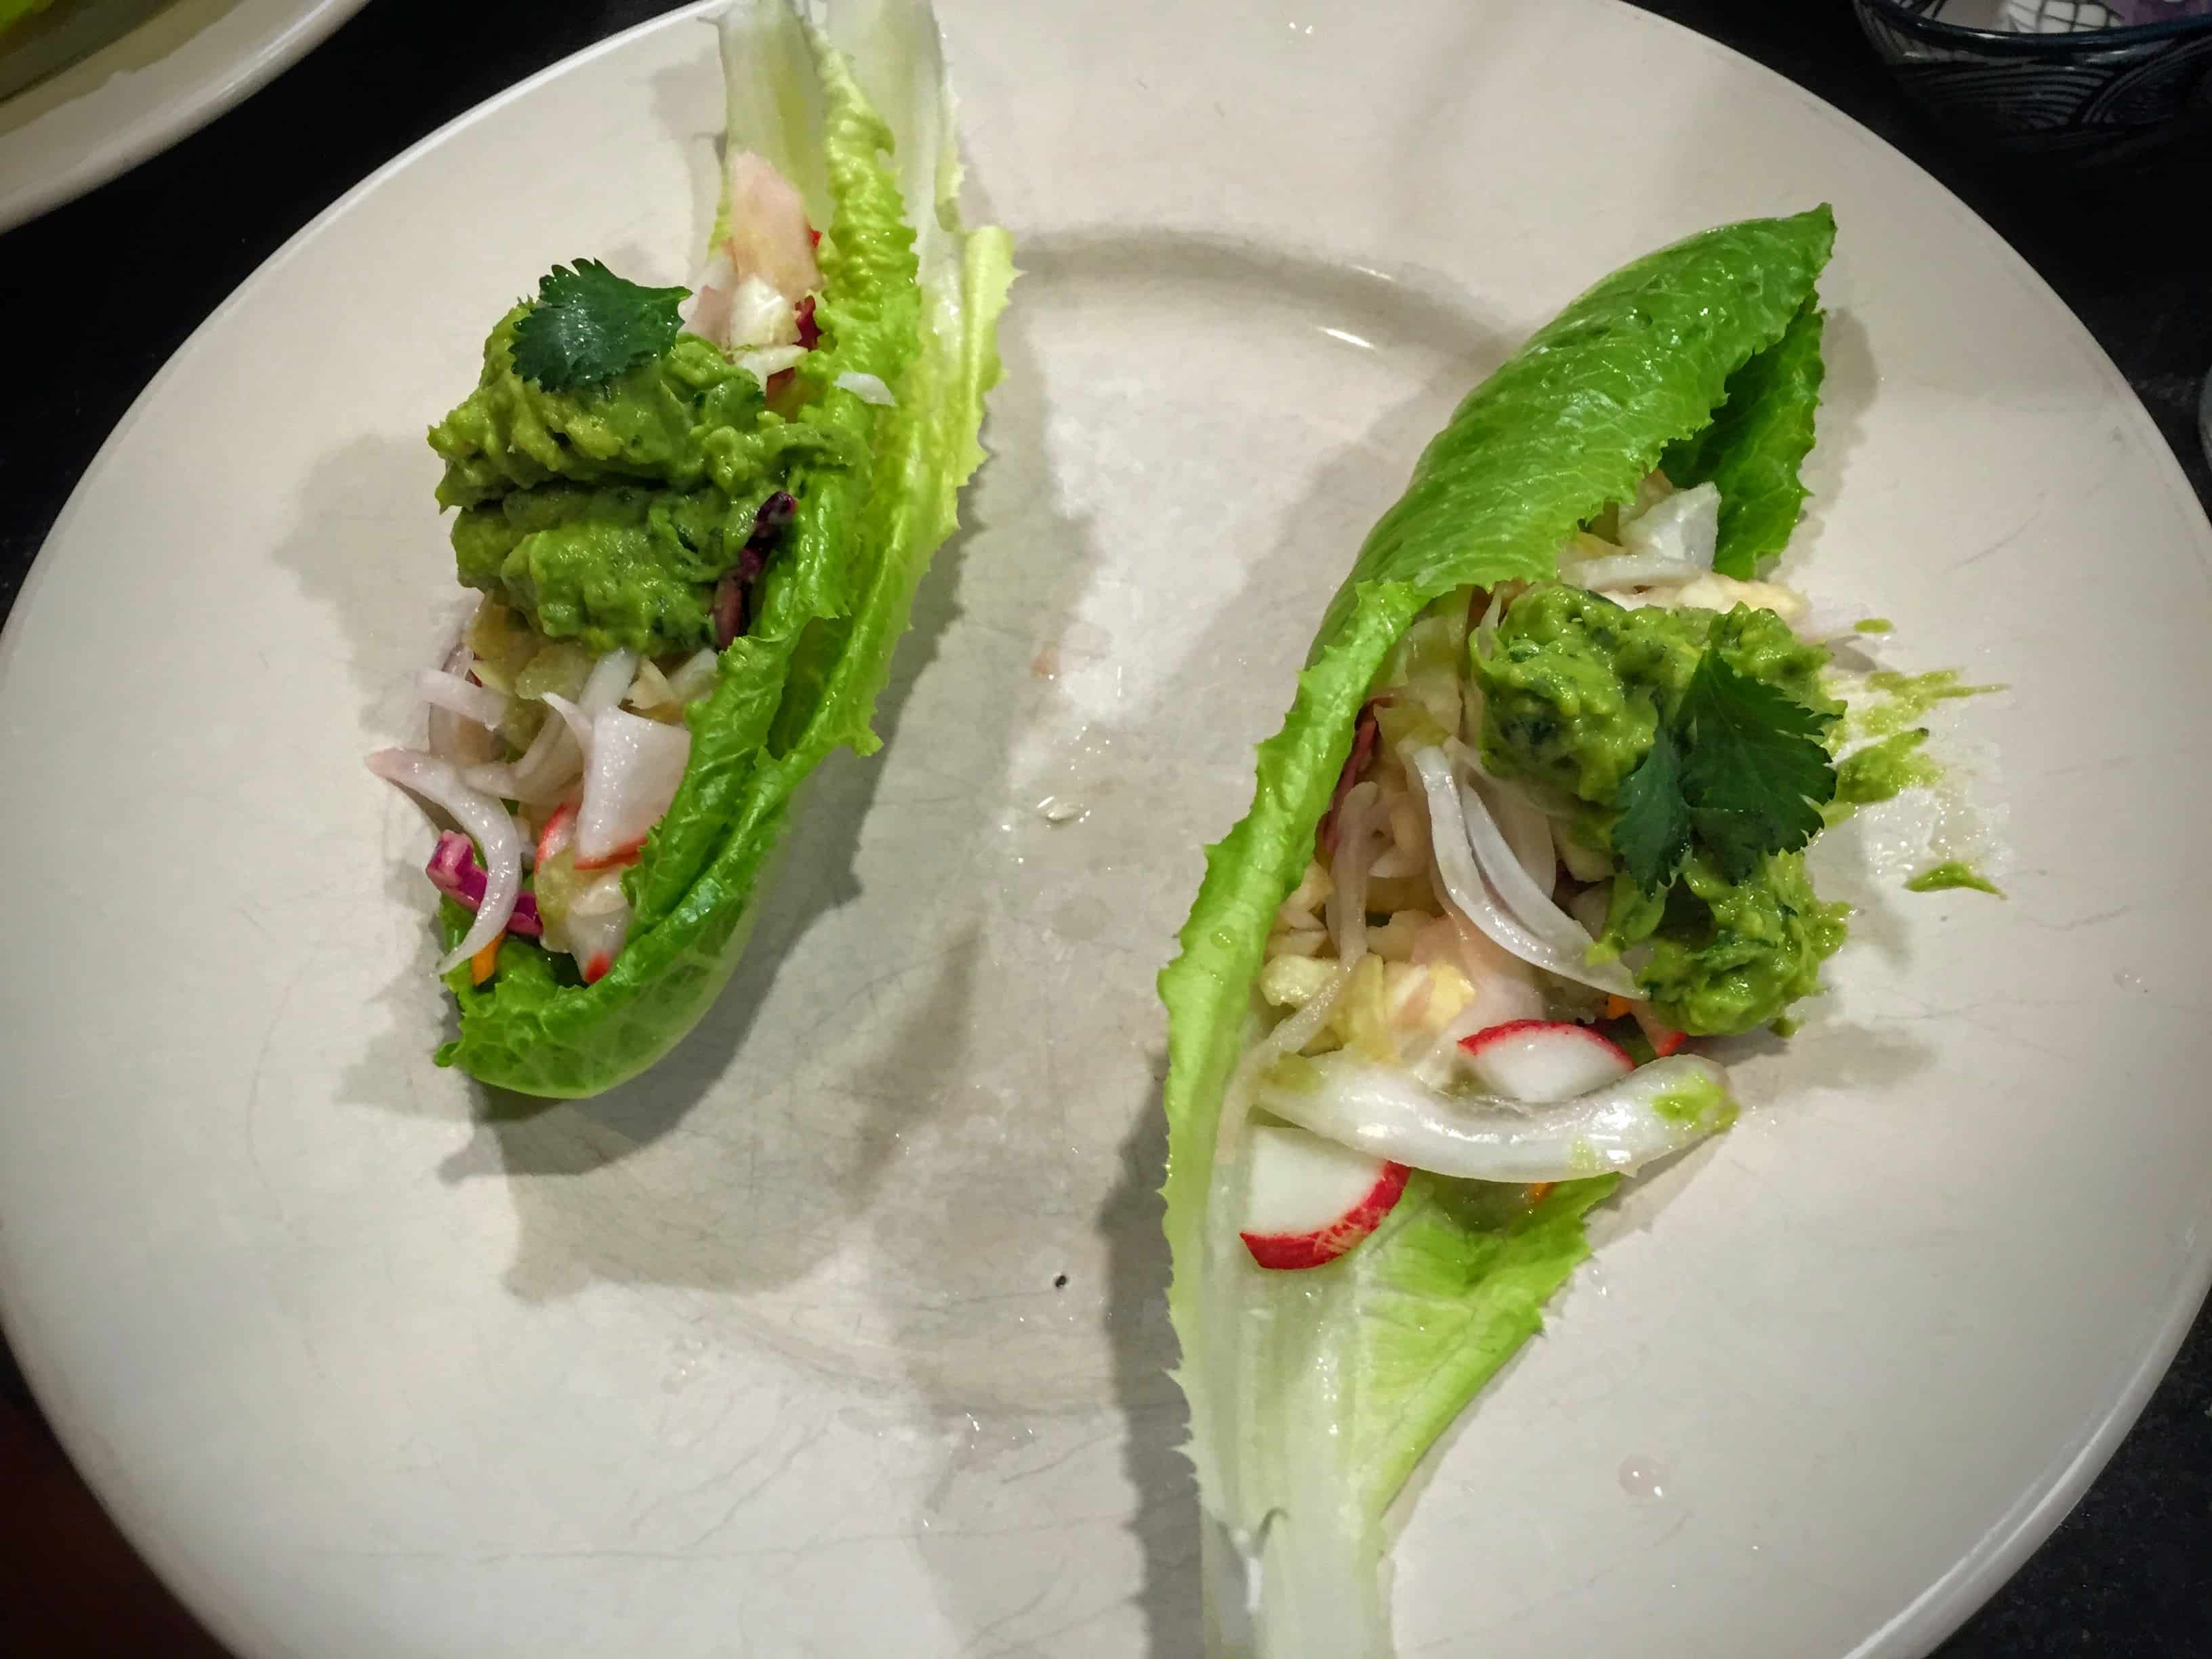 paleo_lettuce_wrapped_cod_fish_tacos_with_cumin_gucamole_and_radish_slaw_from_mypaleos_healthy_no_meat_lime_juice